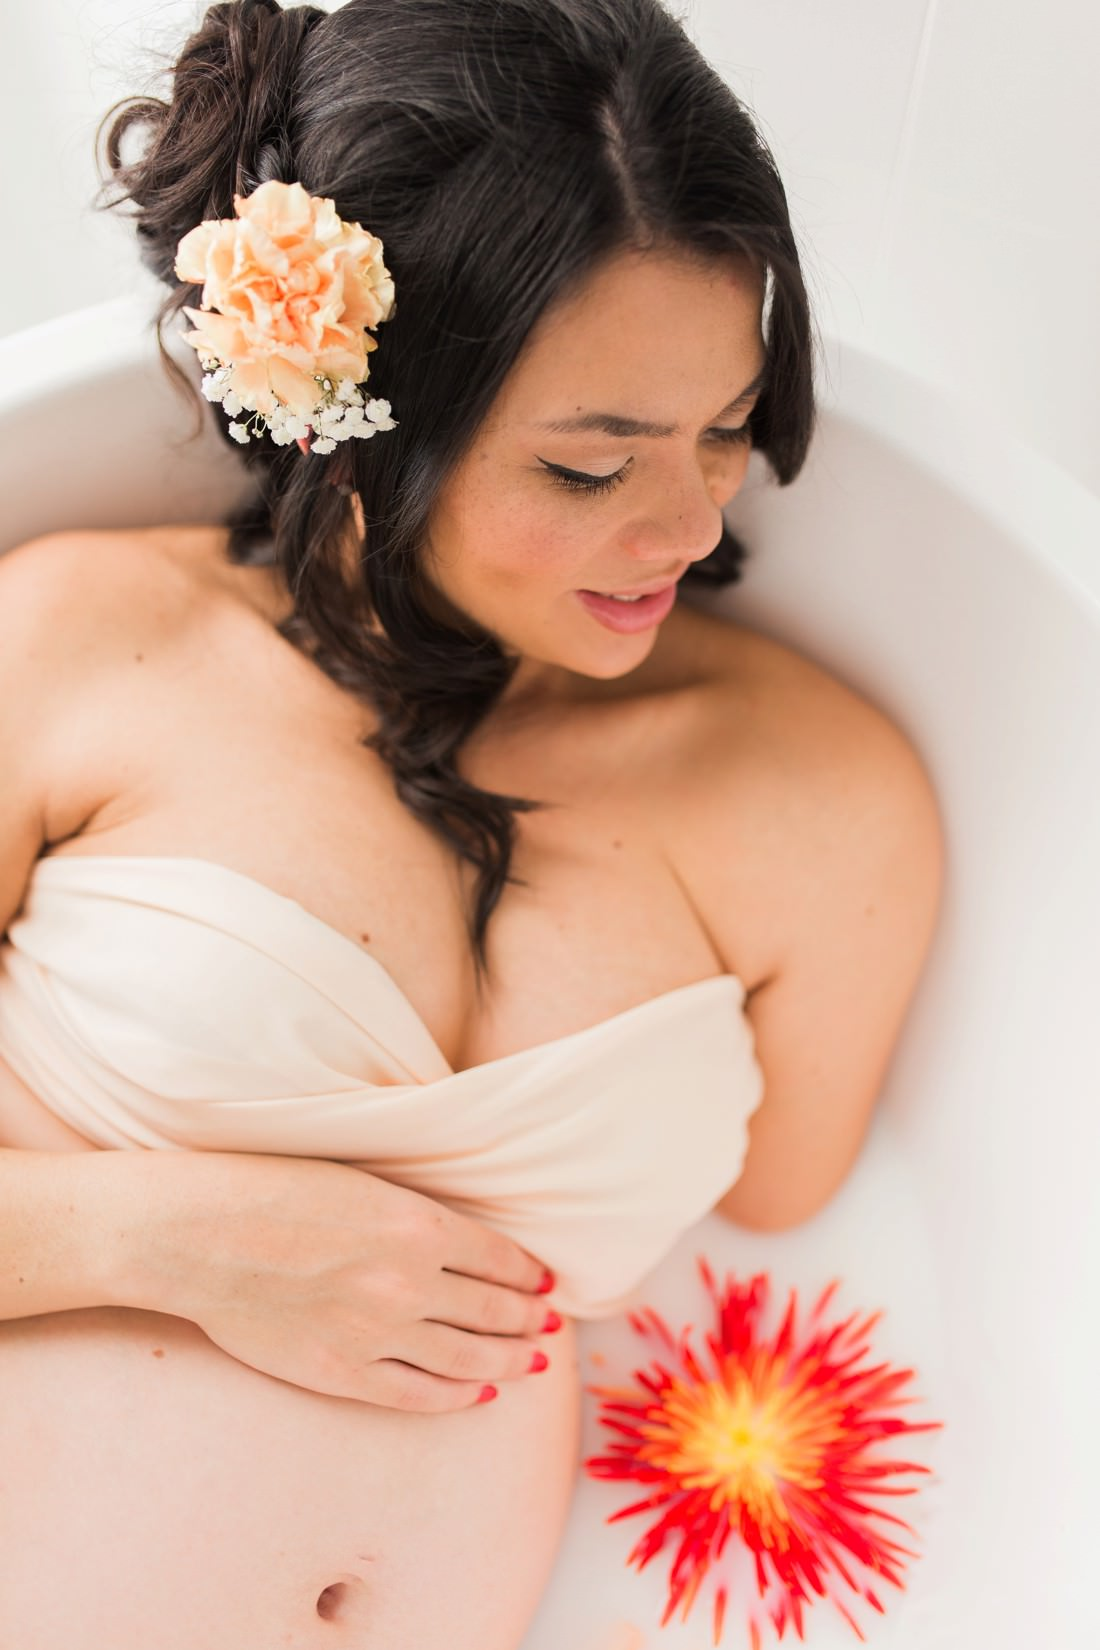 Milk bath pregnancy photoshoot by Mario Colli Photography